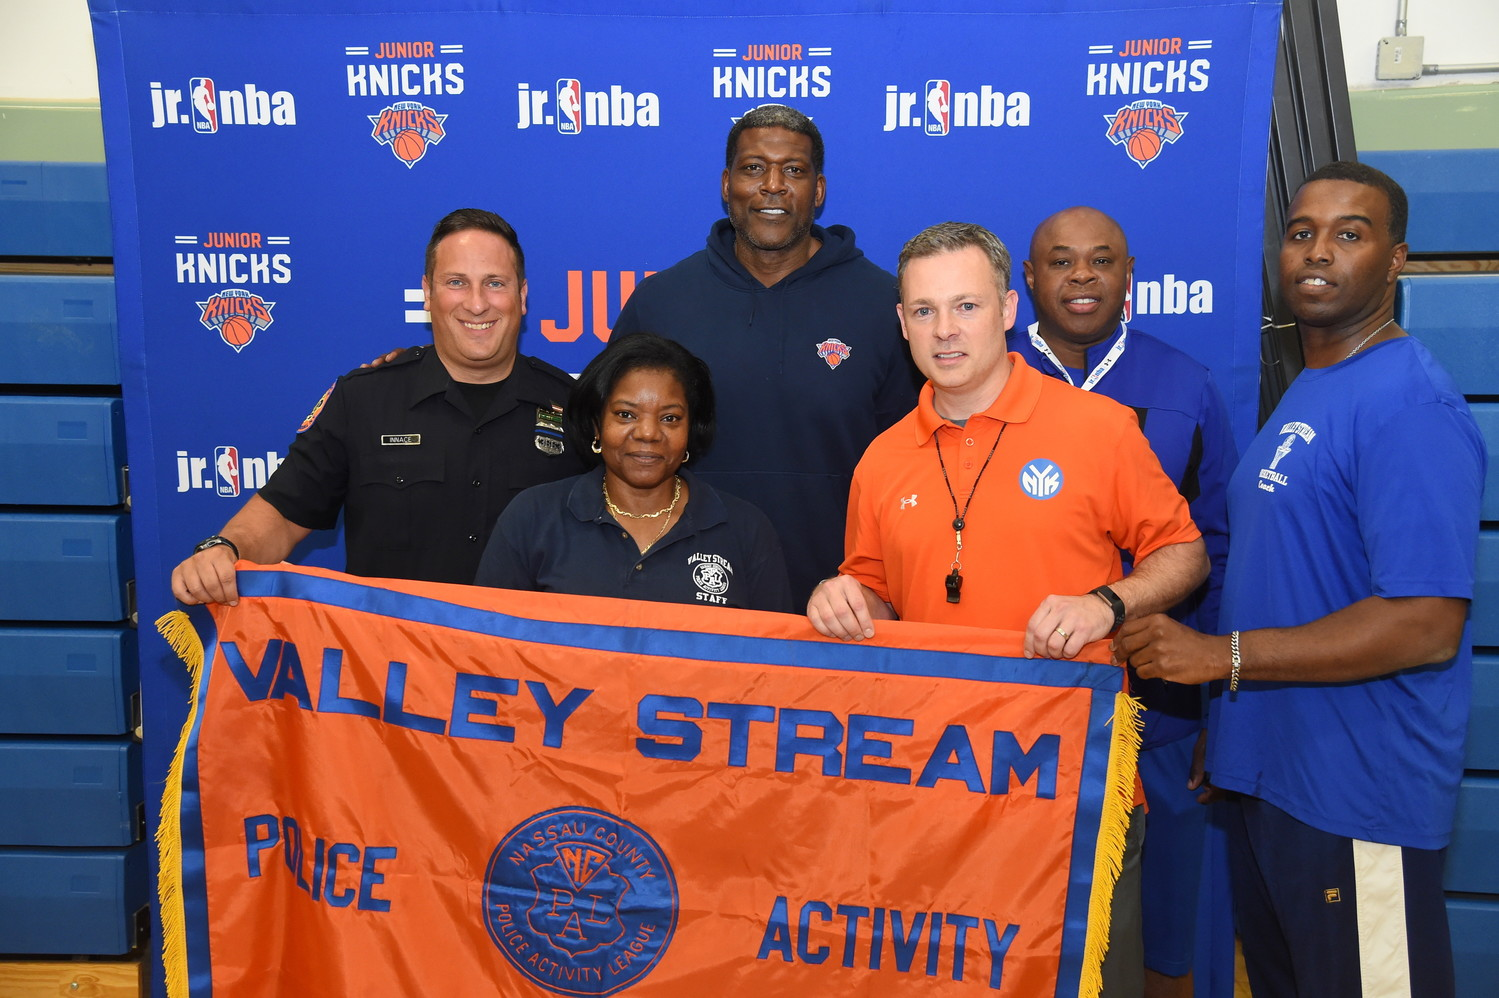 Police Activity League coaches and directors Chris Innace, Annette Gray-Thom, Steve Thom and Ramsey Jenkins applied for the Papa John's Pizza Party and won a two-hour basketball clinic with Larry Johnson, third from left, and Knicks' Director of Fan Experience Brendan Callahan, fourth from left.